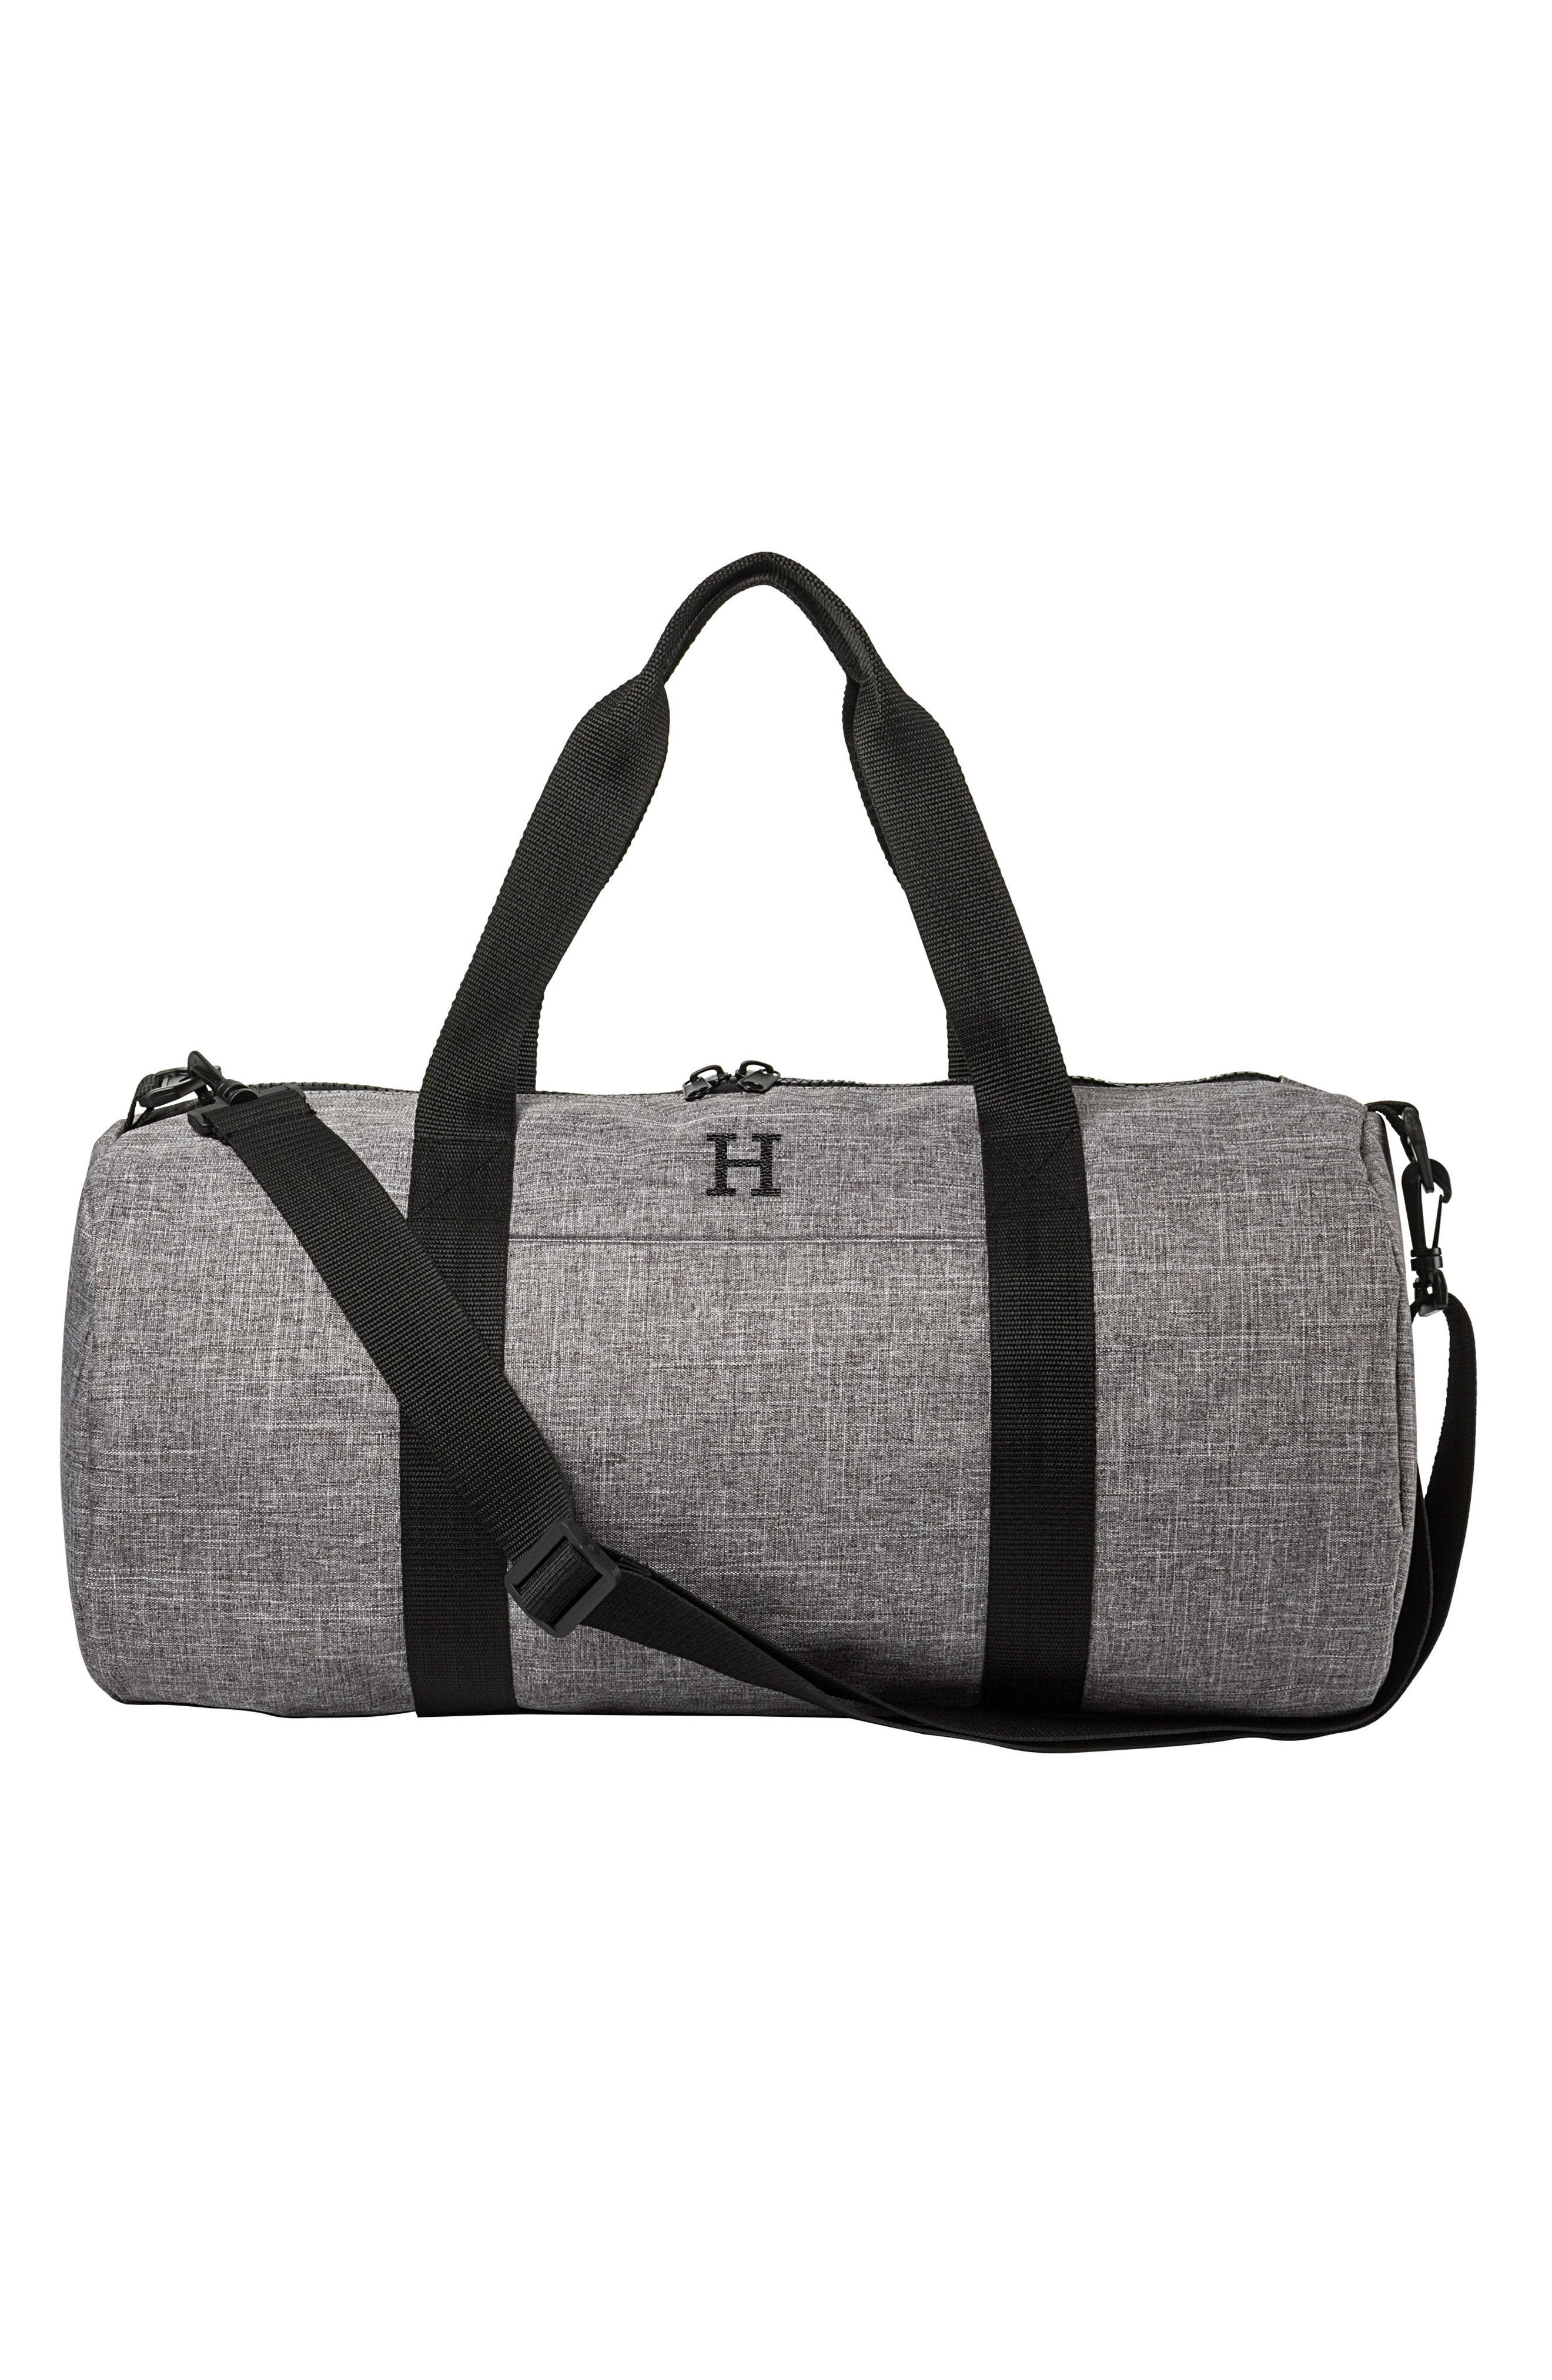 Monogram Duffel Bag,                             Alternate thumbnail 5, color,                             GREY